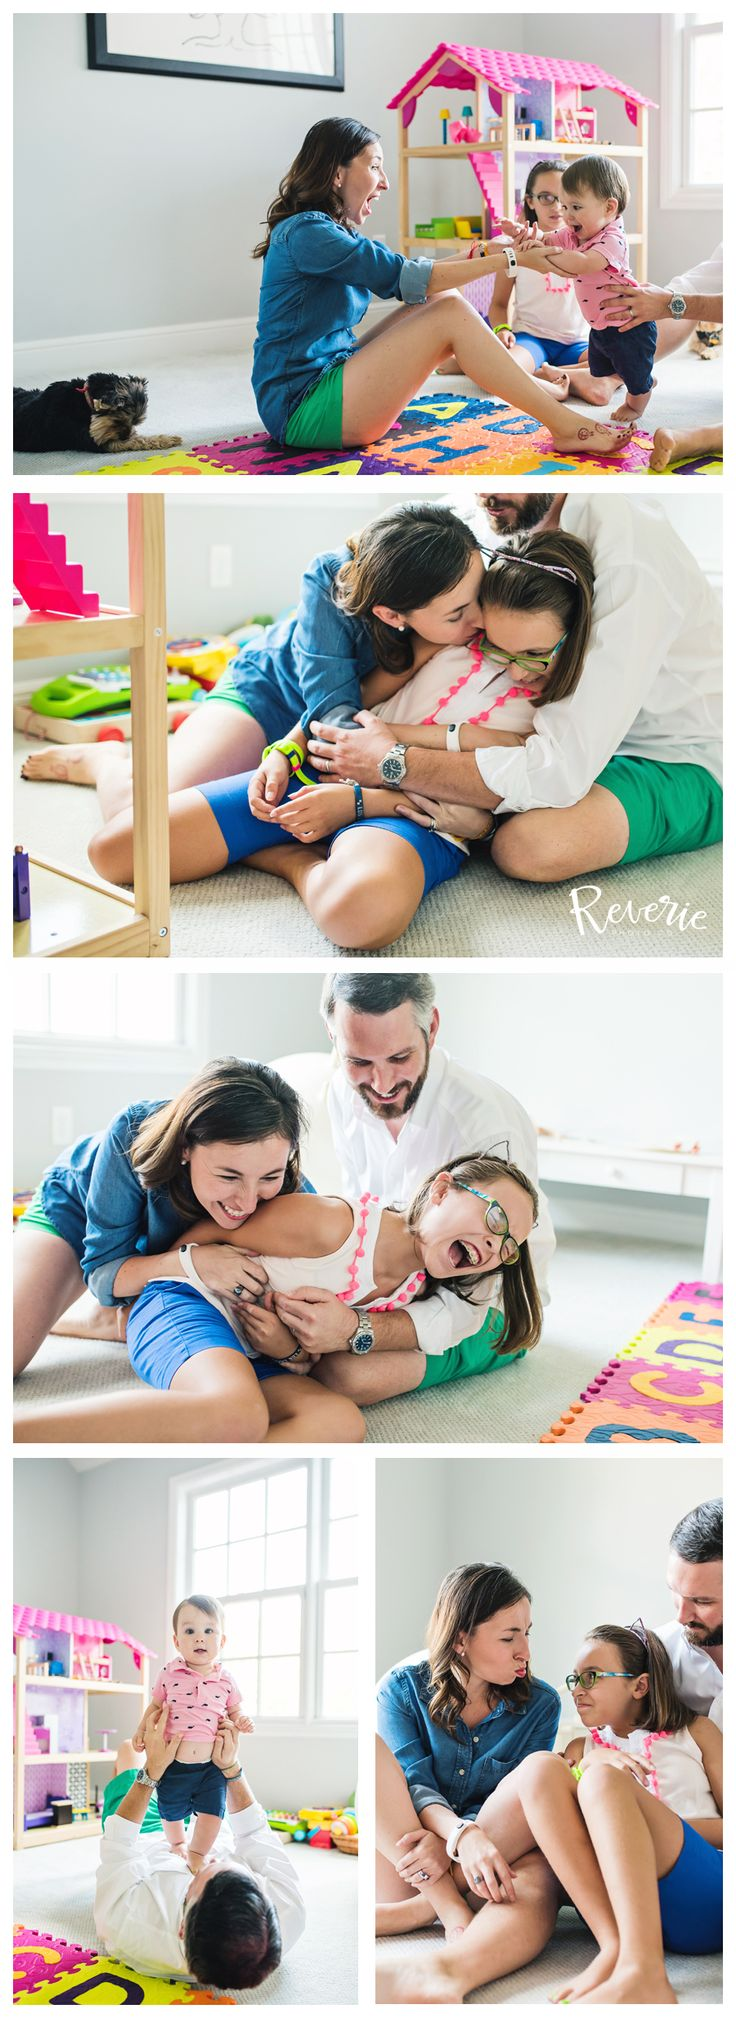 Lifestyle Photography / Photo Shoot at home / Documentary Photography / Reverie Photo Co. / Lifestyle photography inspiration / Fort Worth Lifestyle Photographer / Dallas Lifestyle Photographer / Fort Worth Aledo Family Photographer / Family of four pose idea / Play session